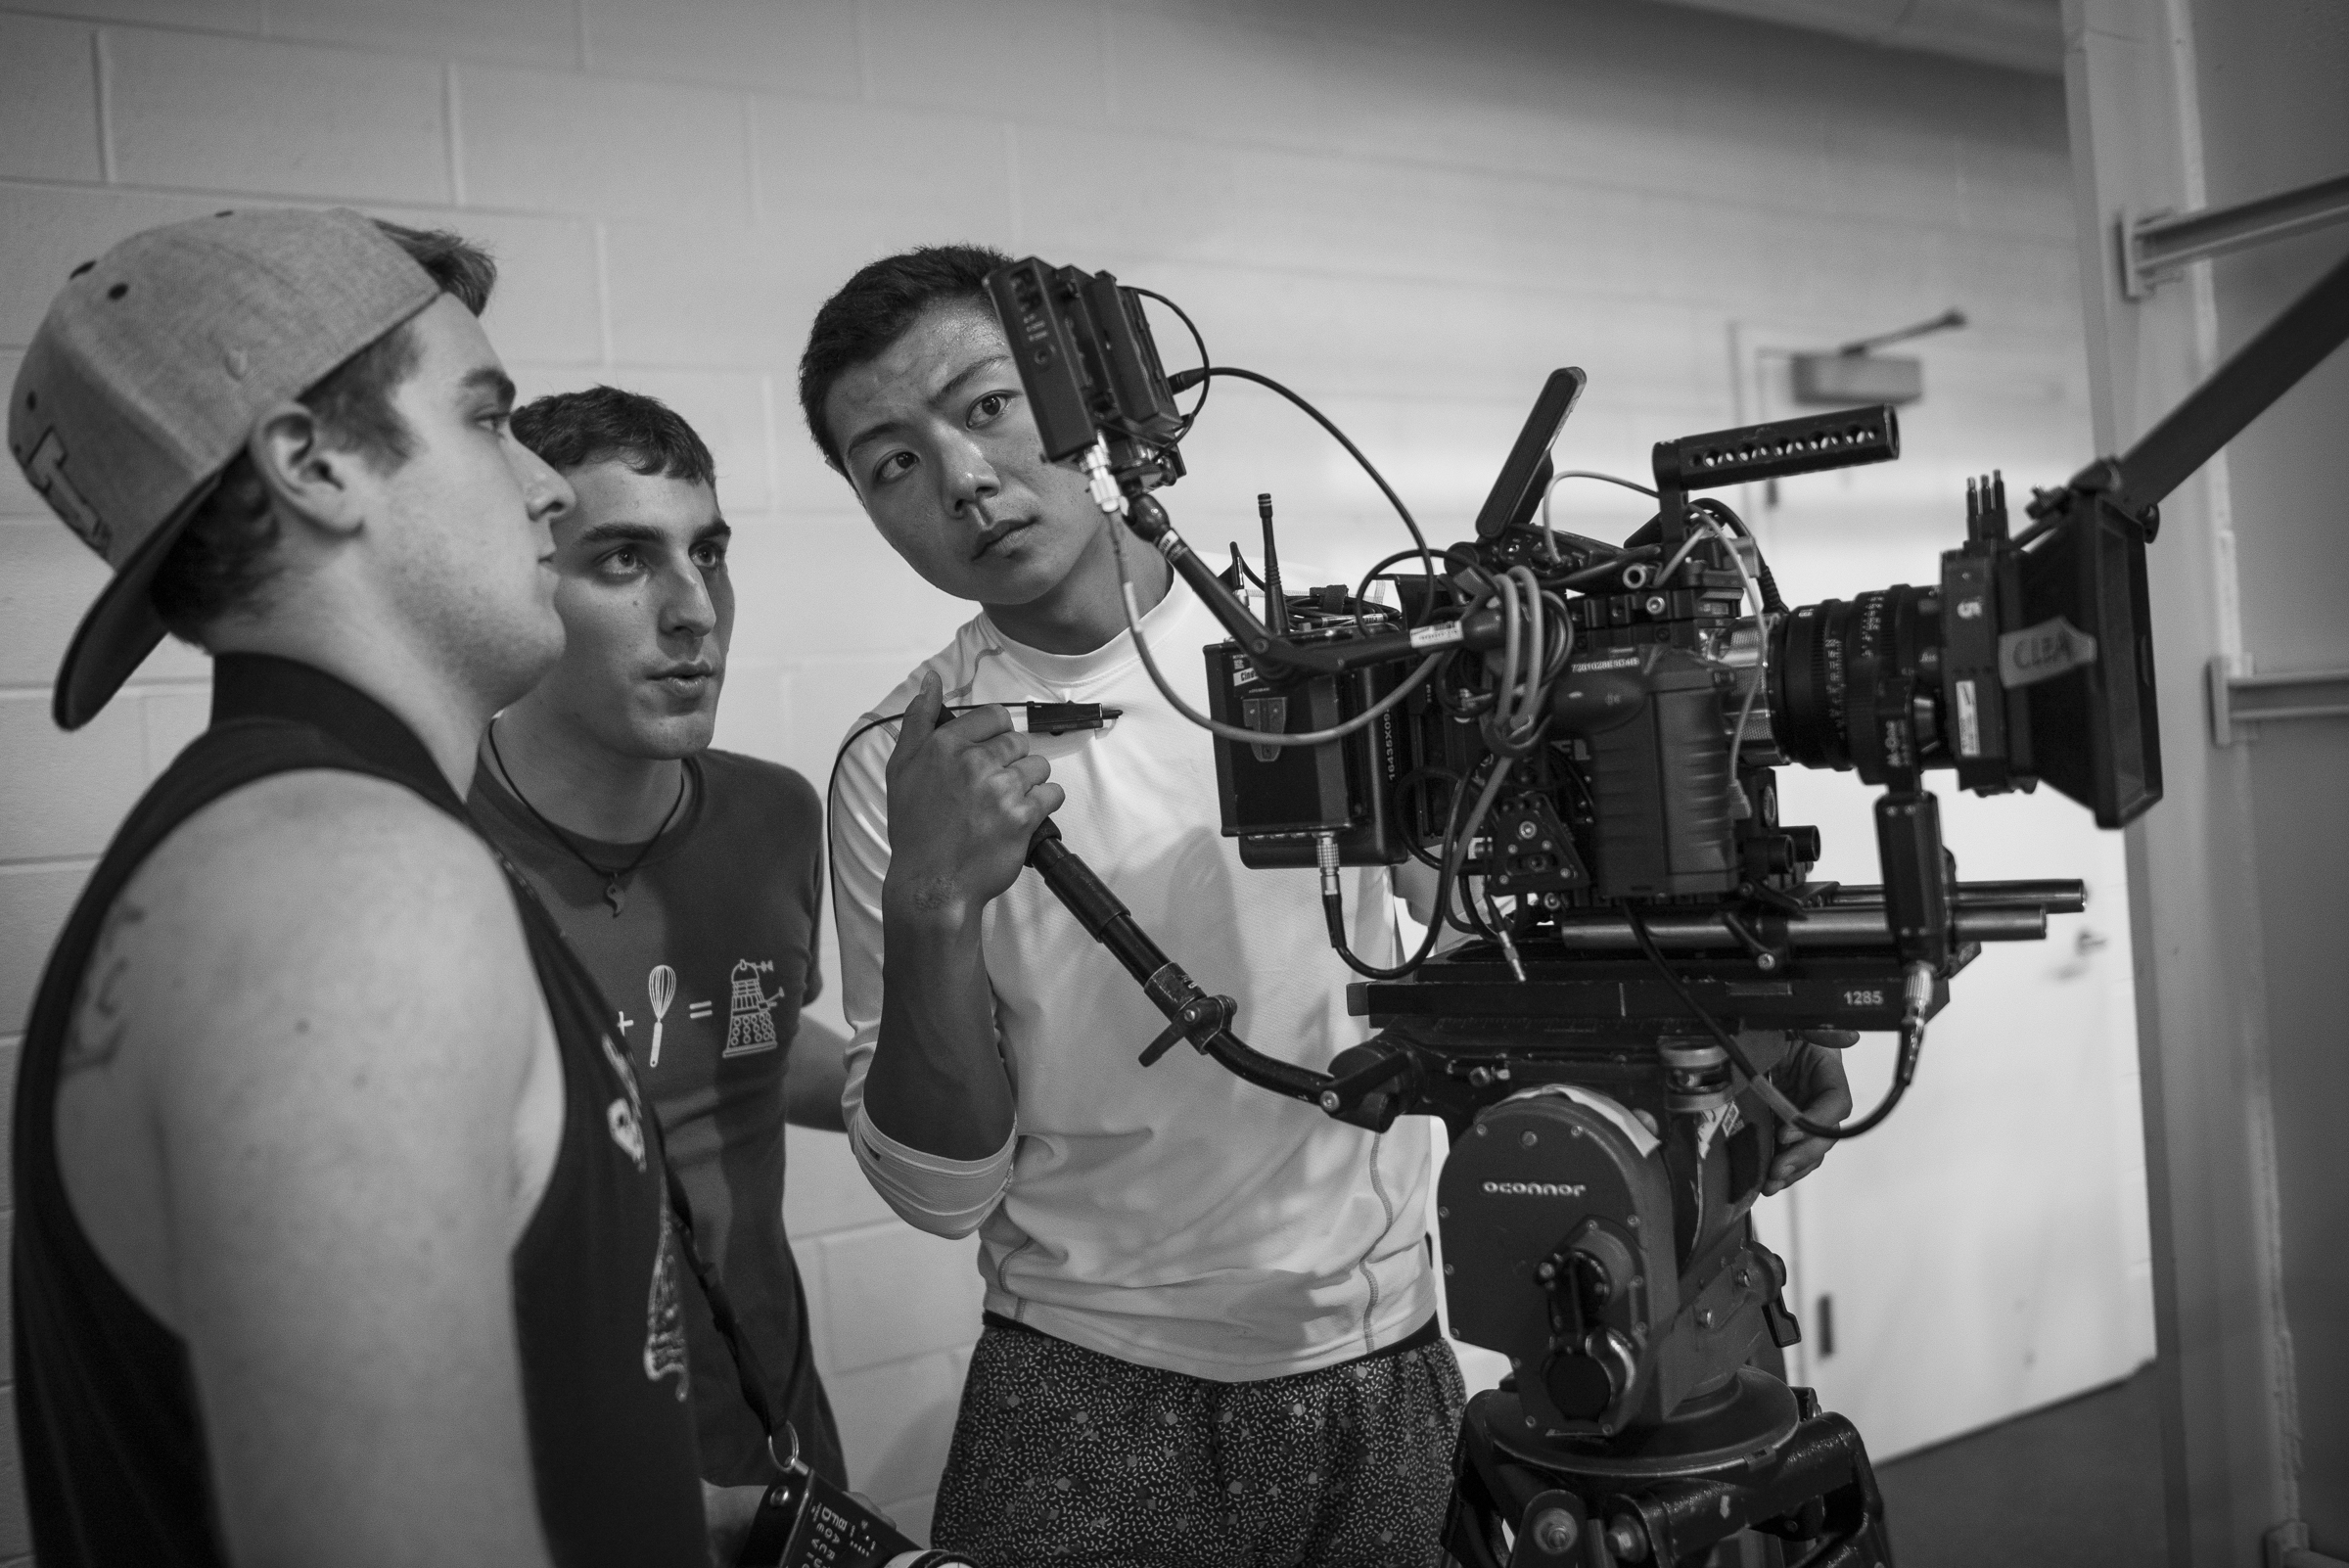 Steven Jacob Russell (1st AC), Brian Blum (Director), and Hamilton Yu (DP).